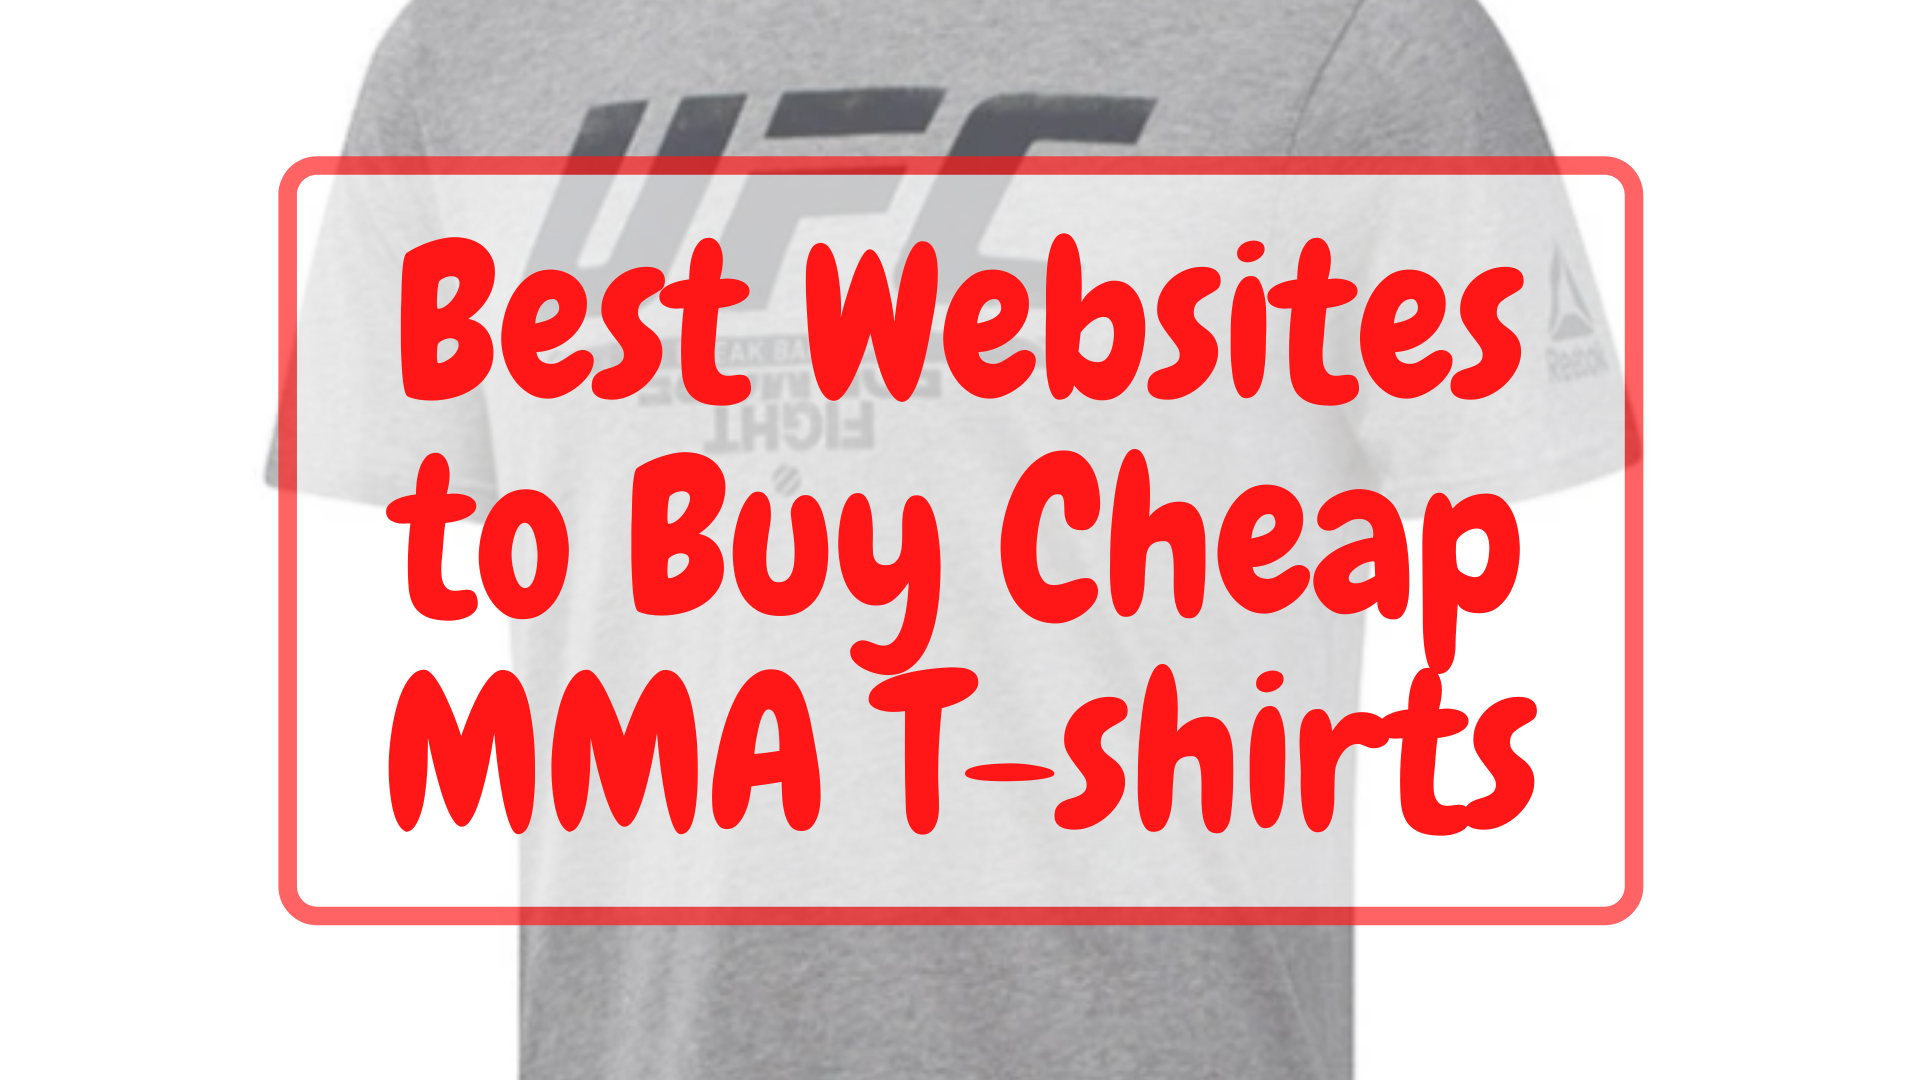 Best Websites to Buy Cheap MMA T-shirts